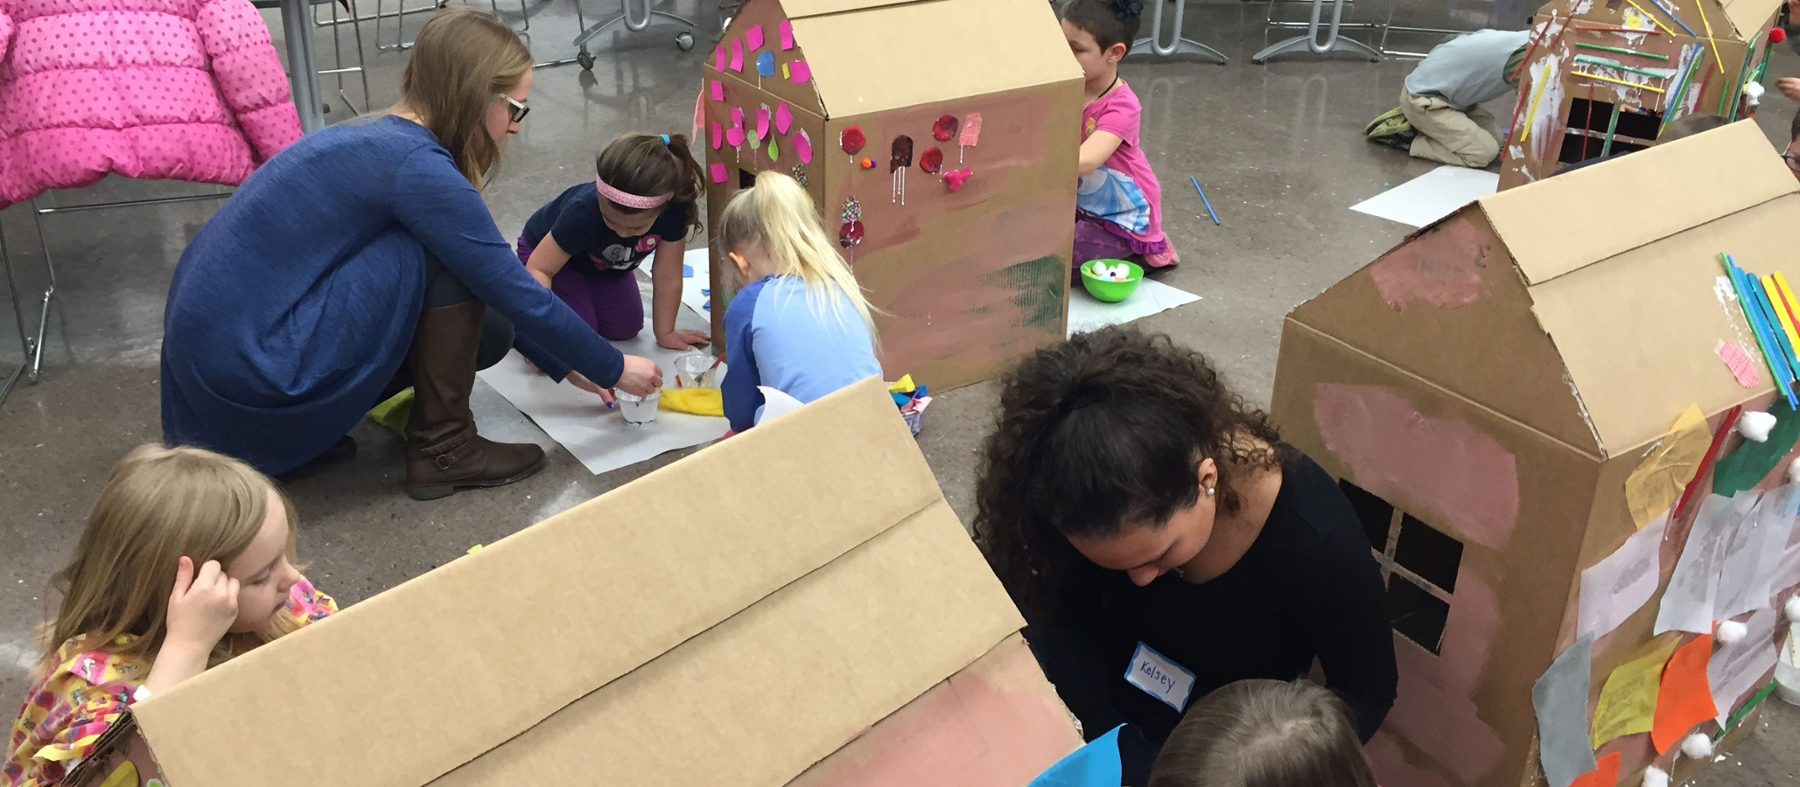 Student teachers and children paint cardboard box houses on the floor